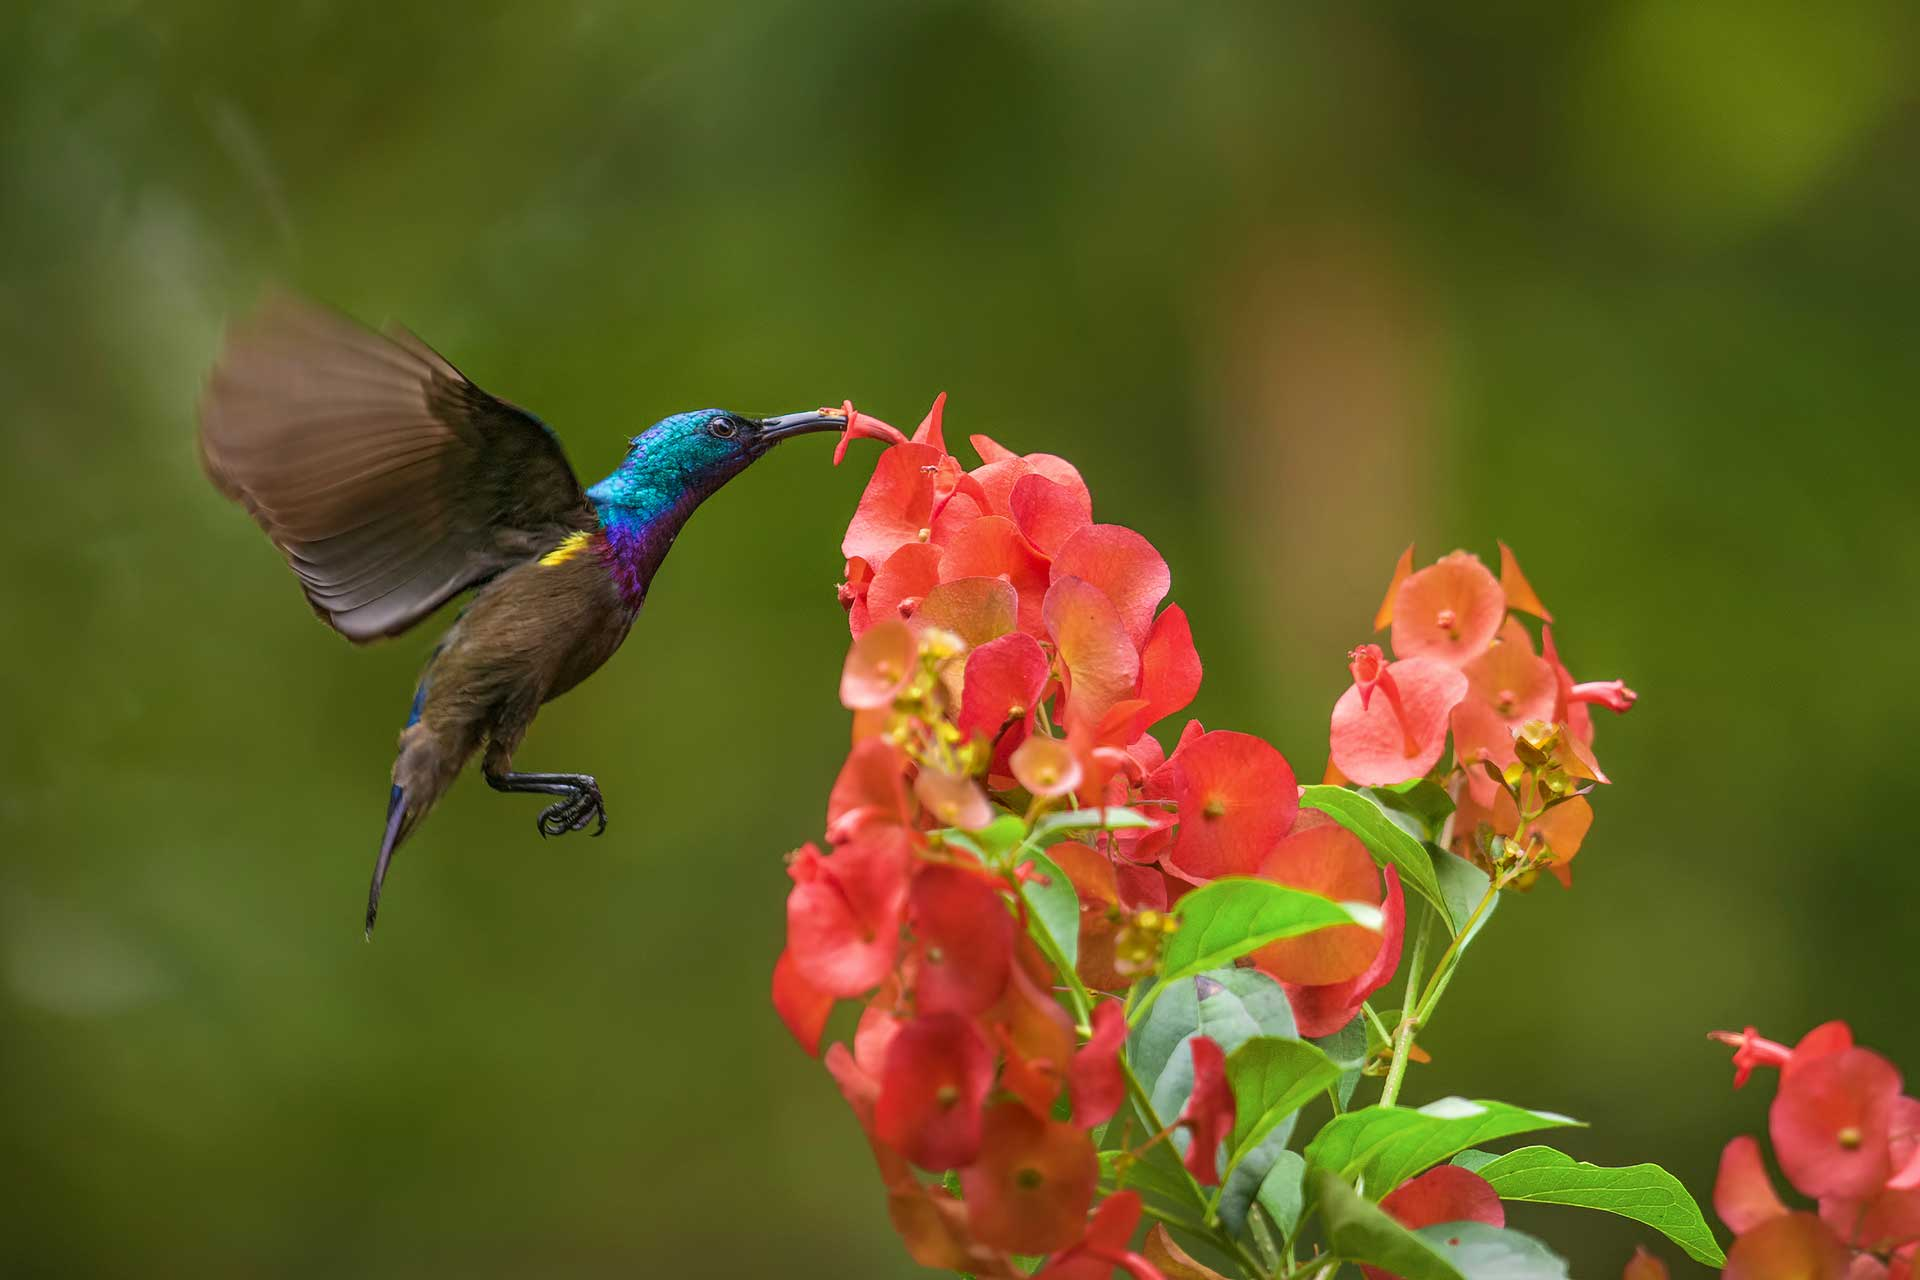 """All sunbirds are swift and skilled fliers, always on the move, like this Loten's sunbird. """"The first thing one notices about sunbirds is their energy levels,"""" says Dalvi. """"They can hover mid-air, which requires incredible amounts of energy, and they can hang upside down while sipping nectar, which is unusual for birds."""" Photo: Soumabrata Moulick"""